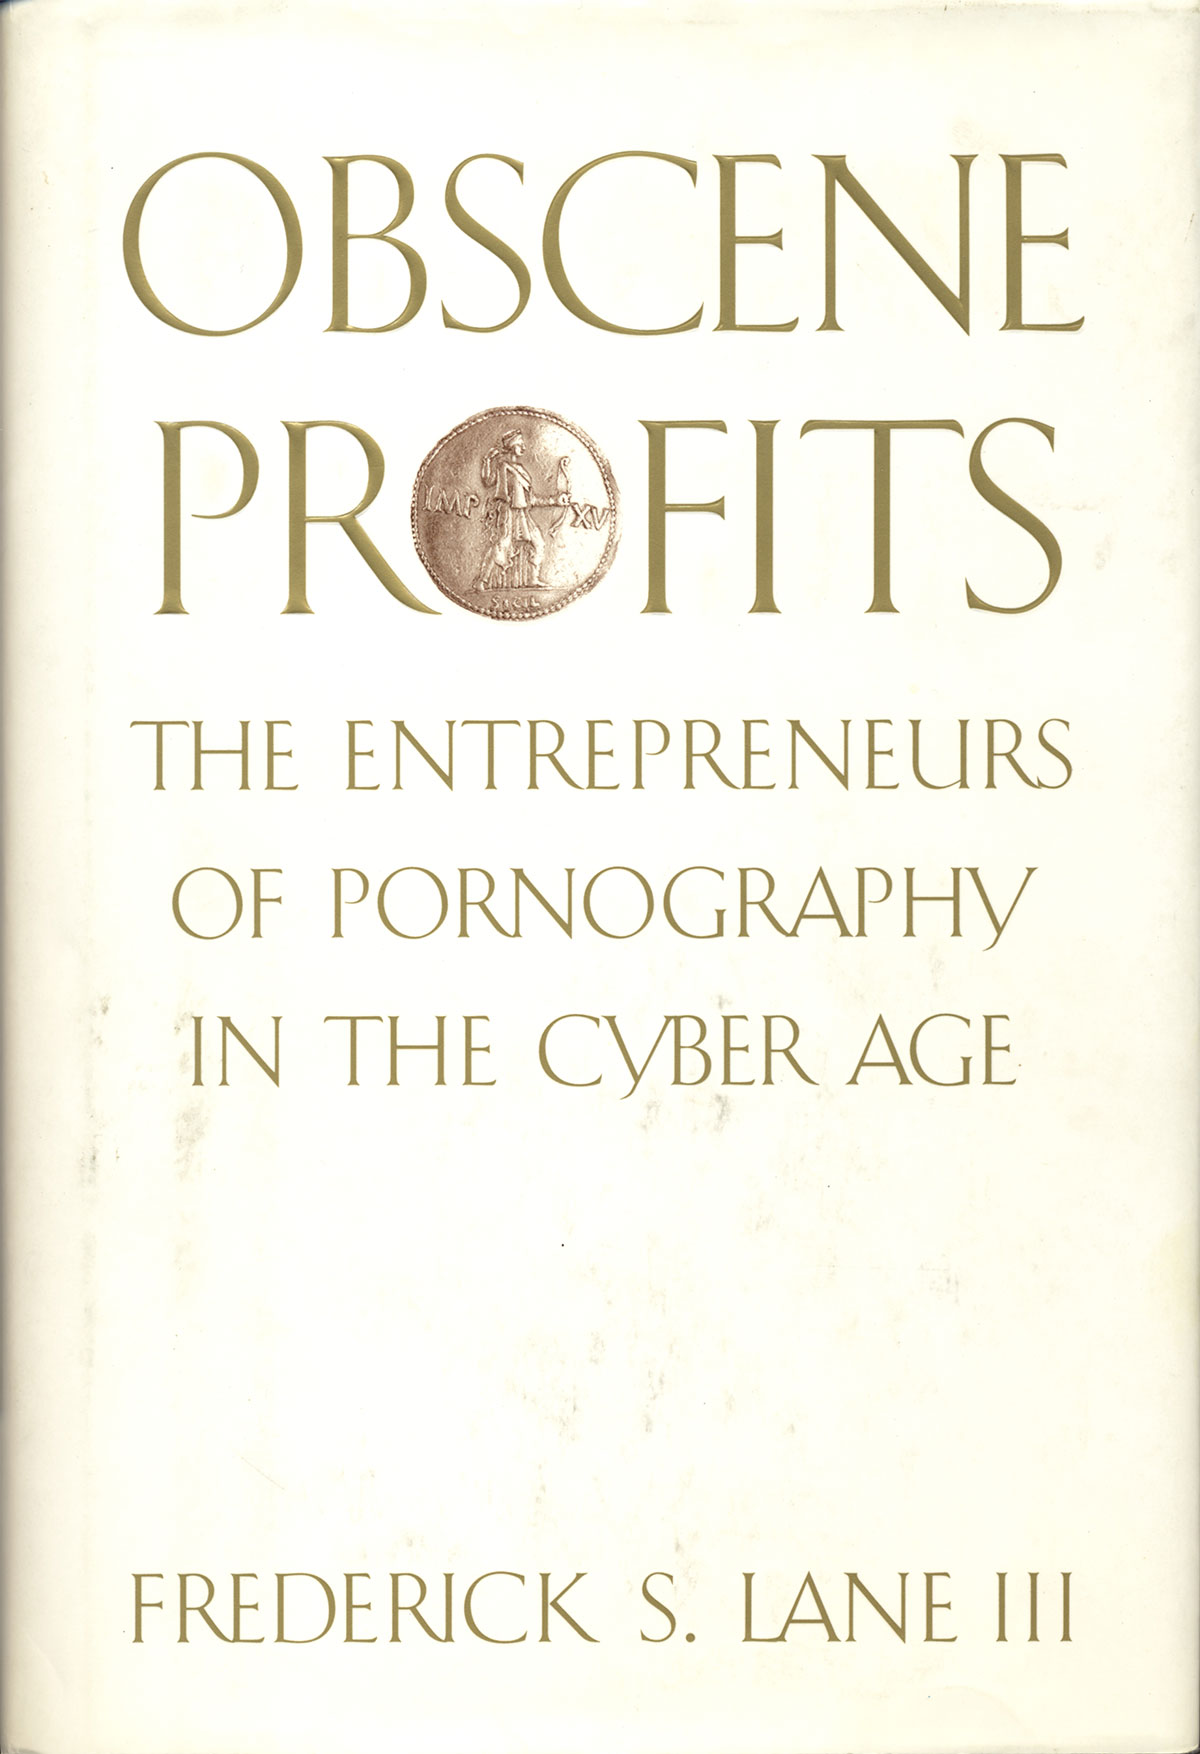 Obscene_Profits